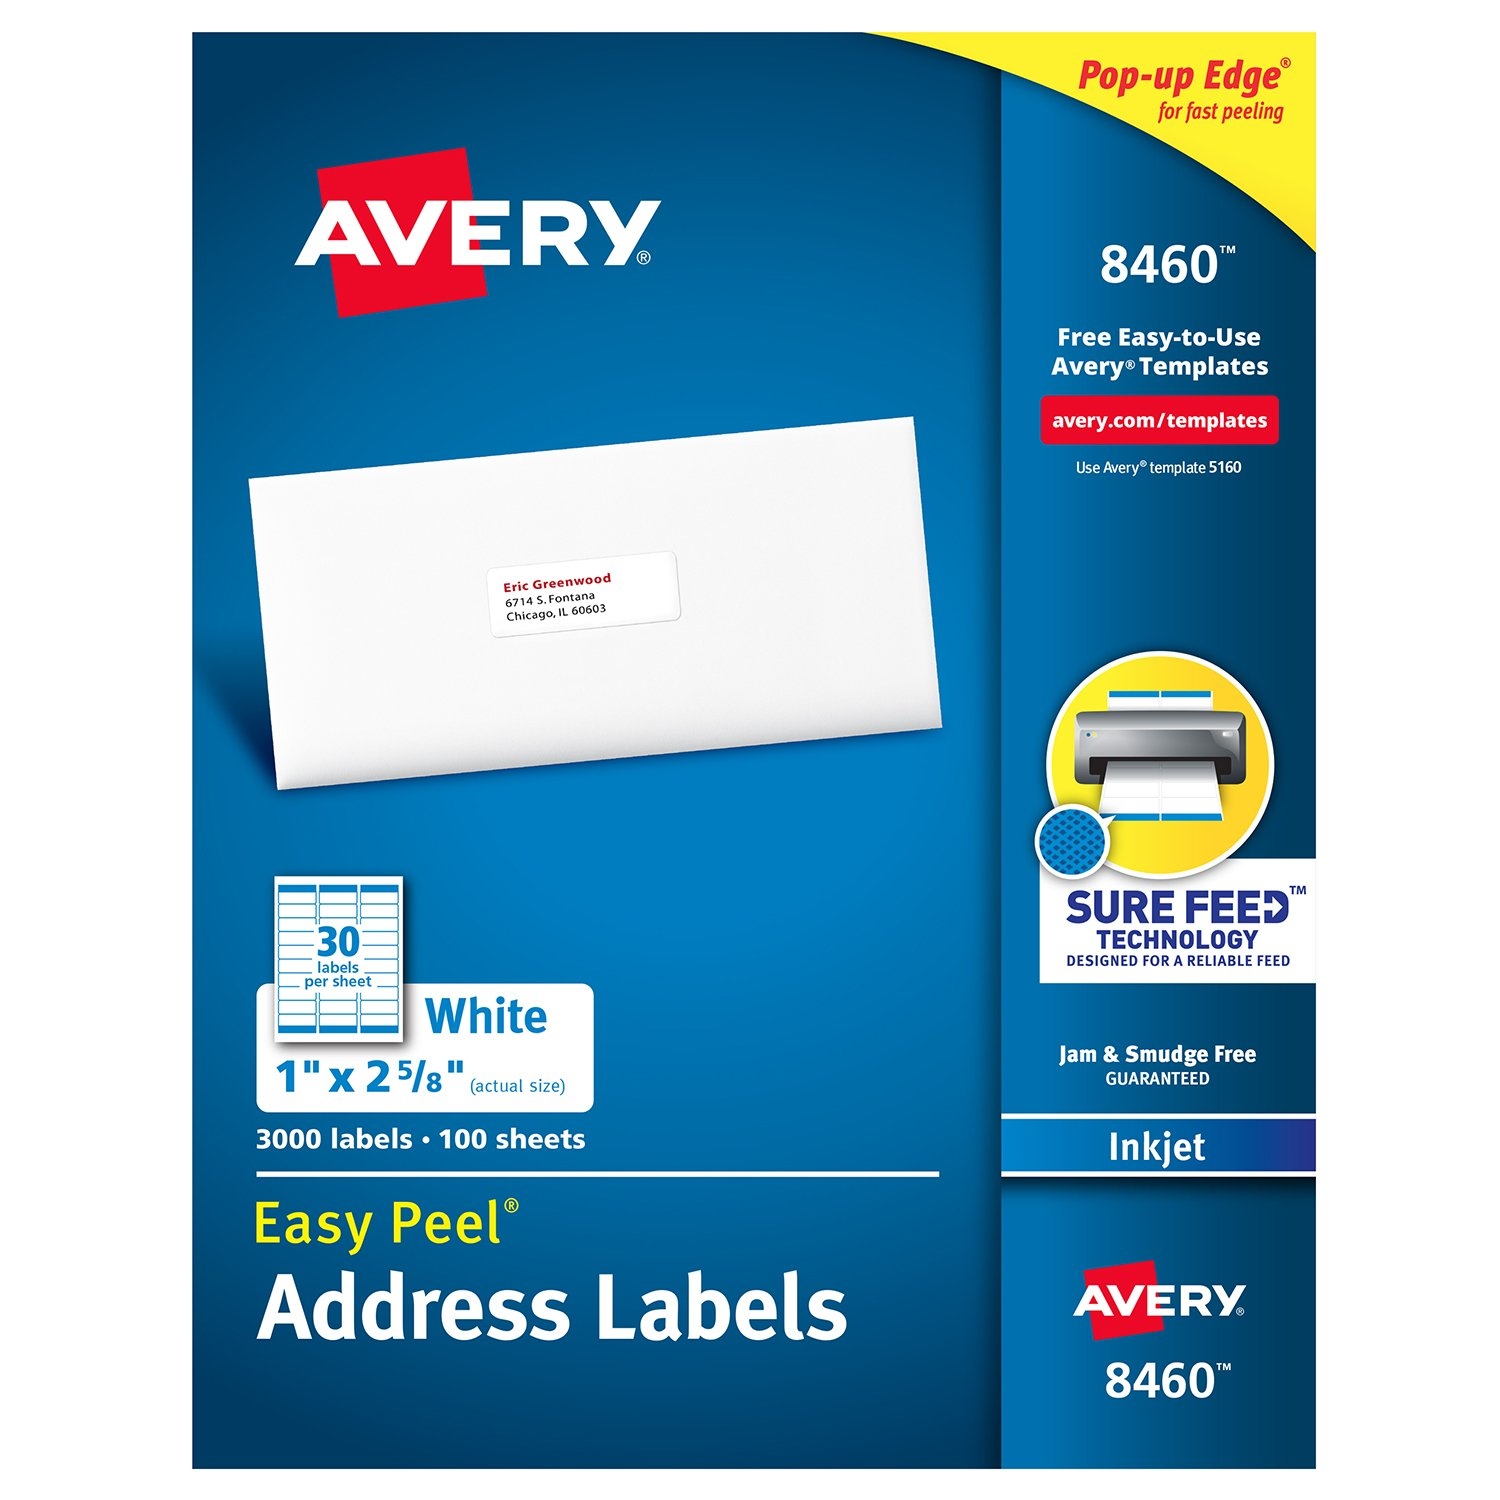 Avery Address Labels with Sure Feed for Inkjet Printers, 1'' x 2-5/8'', 3,000 Labels, Permanent Adhesive (8460), White